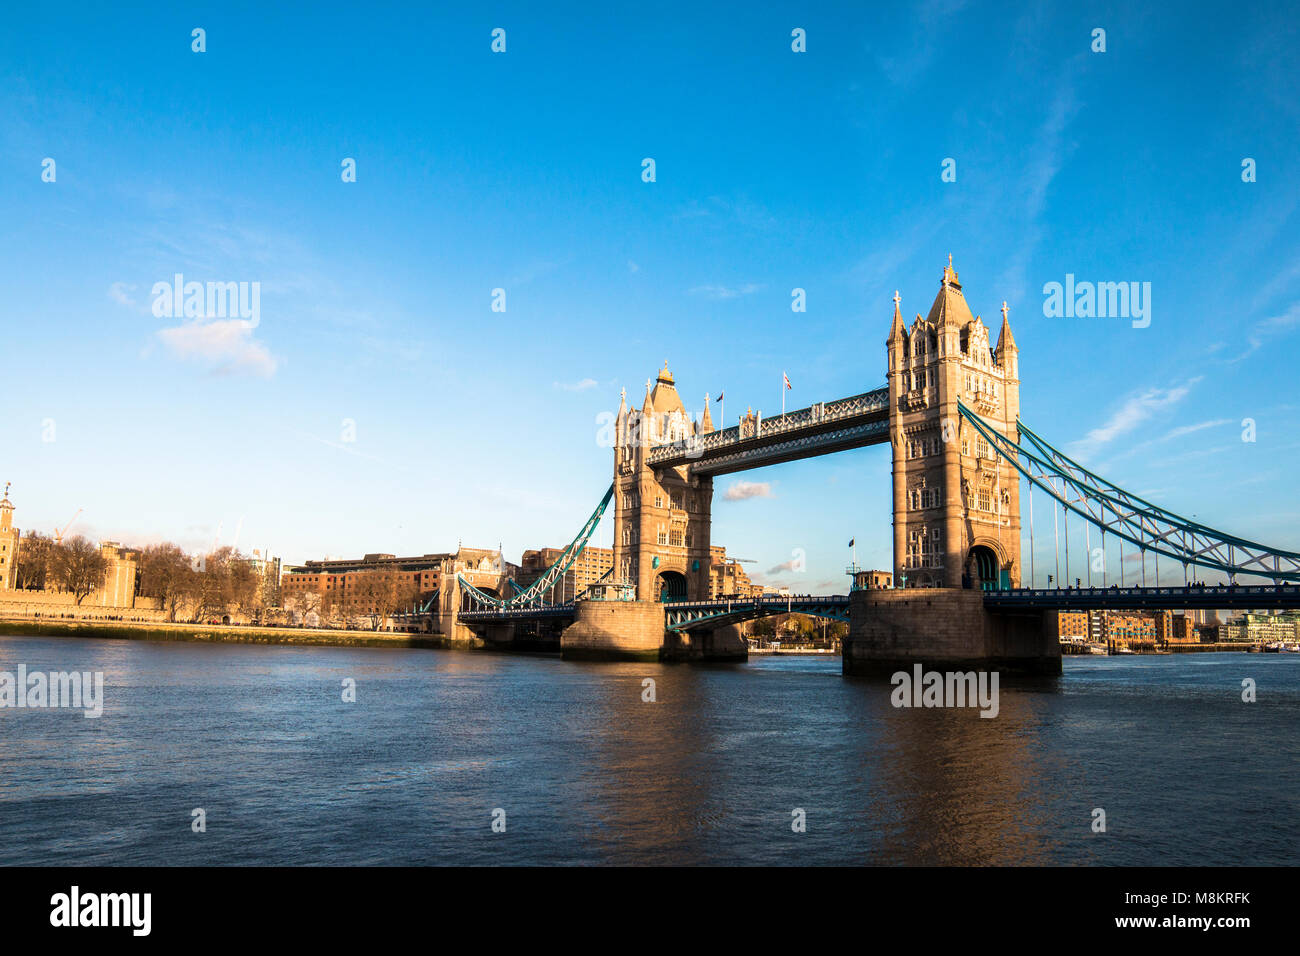 Tower Bridge is a combined bascule and suspension bridge in London built between 1886 and 1894. The bridge crosses - Stock Image